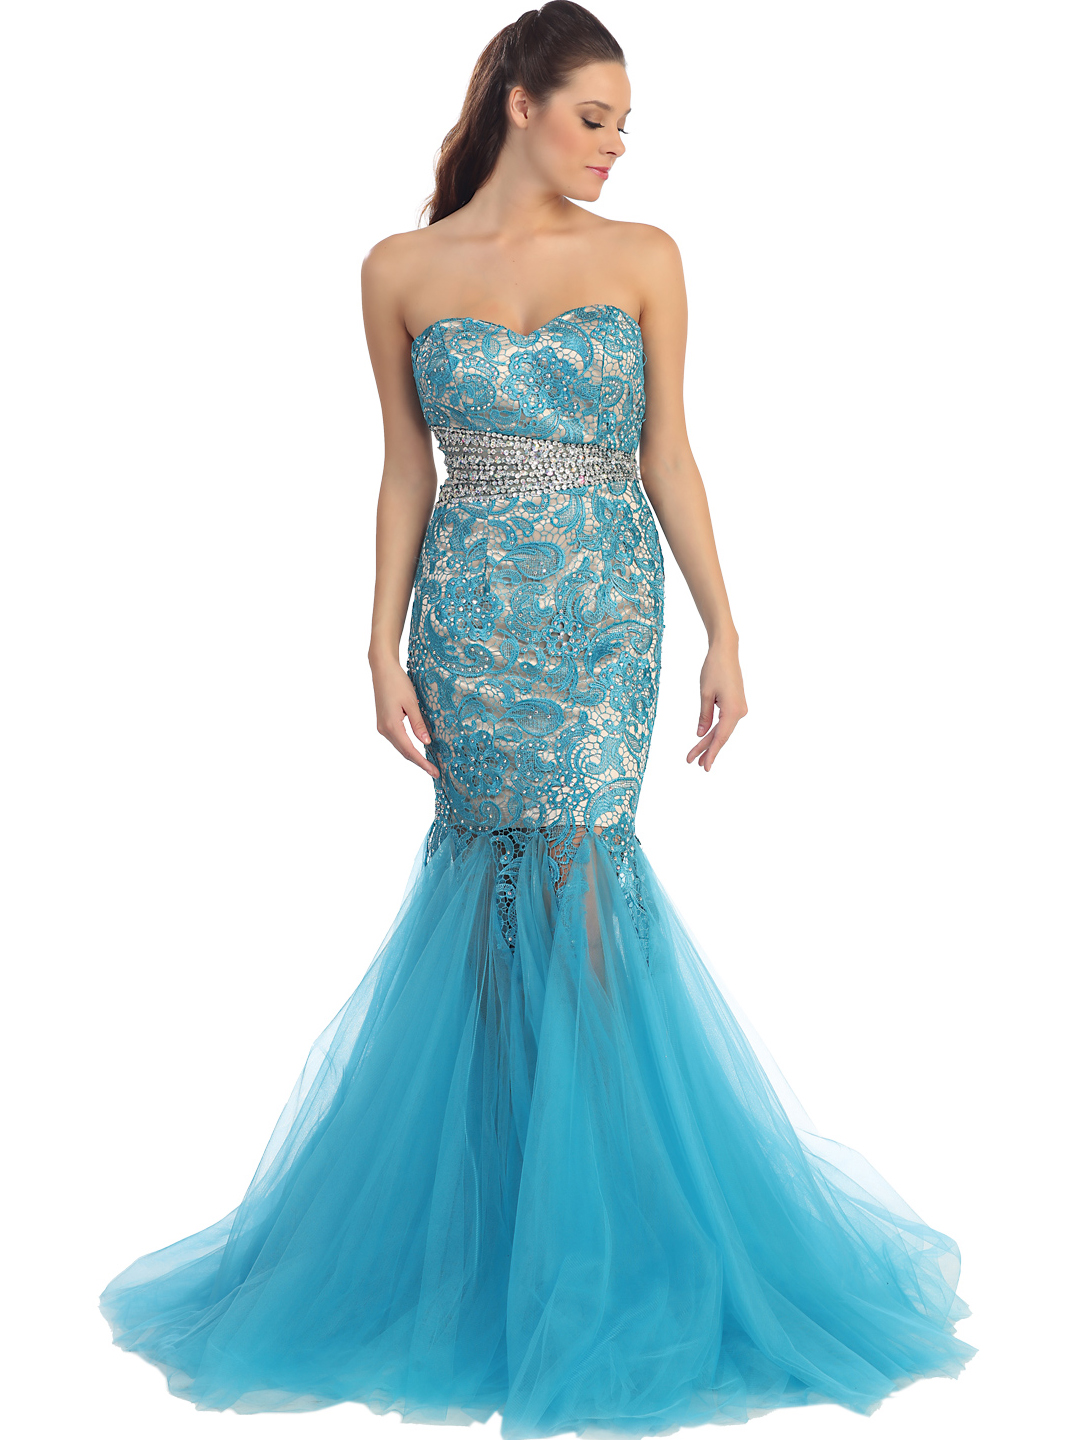 Strapless Fit and Flare Prom Dress | Sung Boutique L.A.